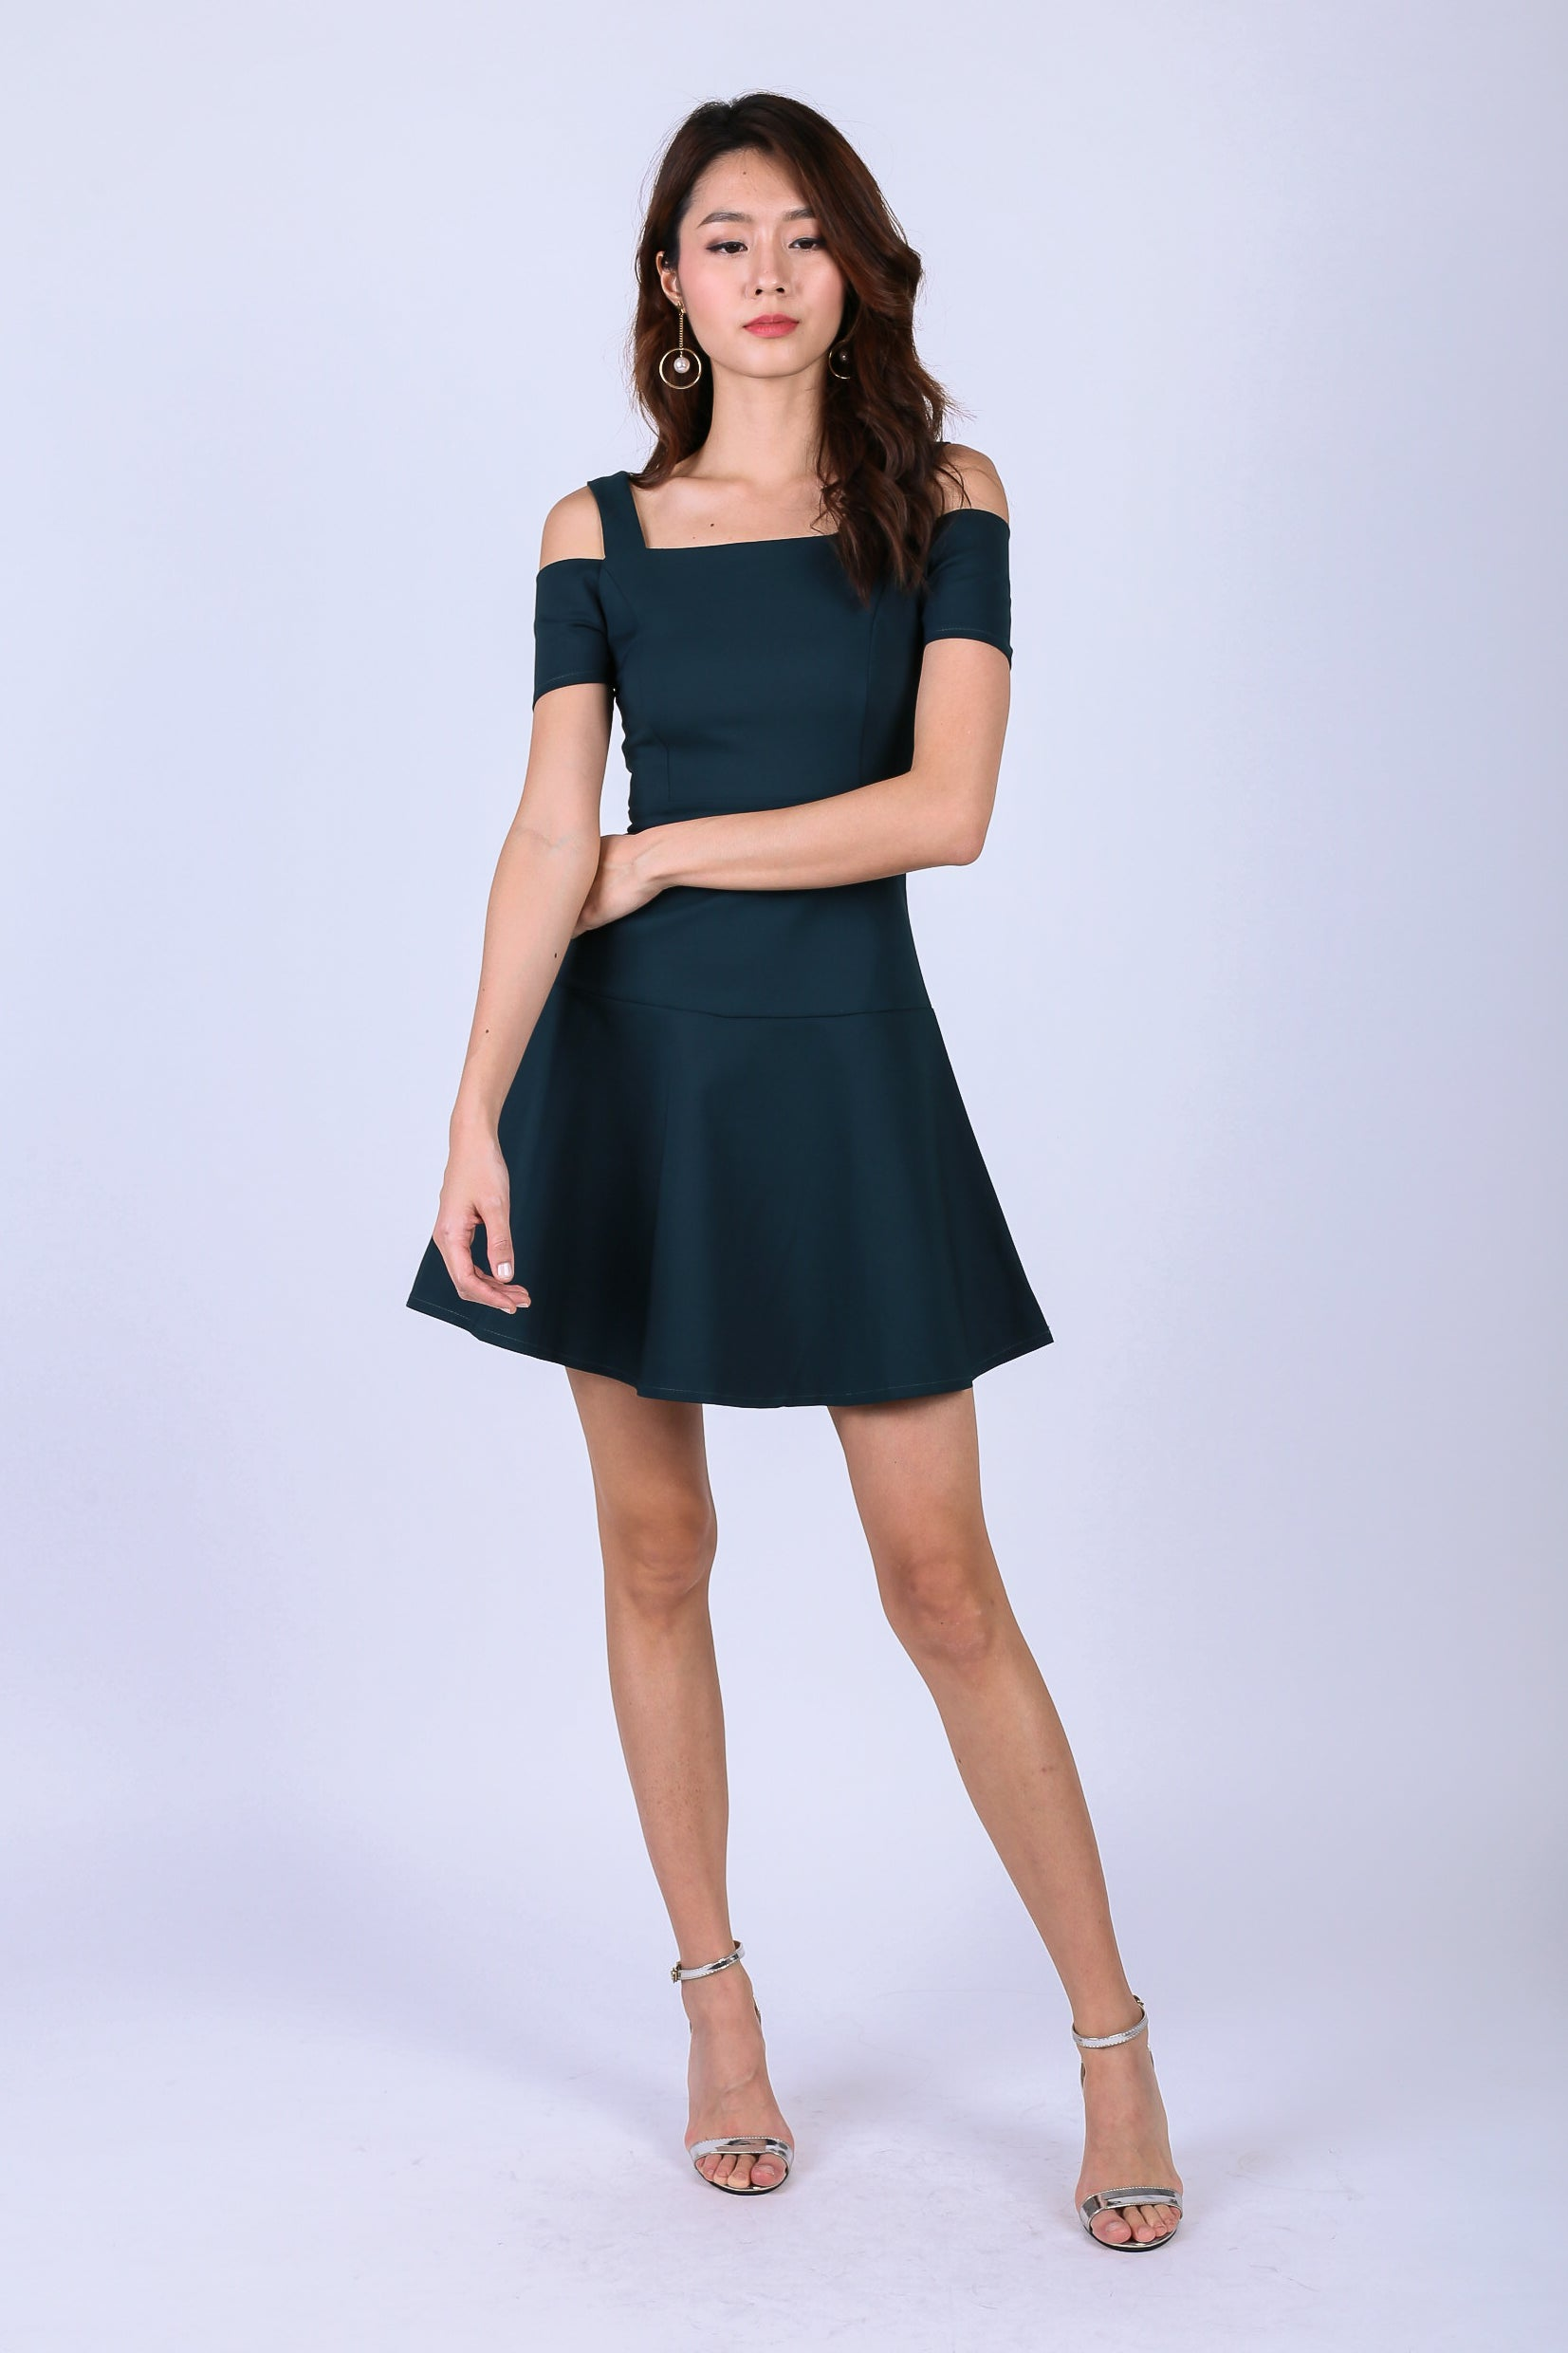 *TOPAZ* (PREMIUM) ALDYS COLD SHOULDER SKATER DRESS IN FOREST GREEN